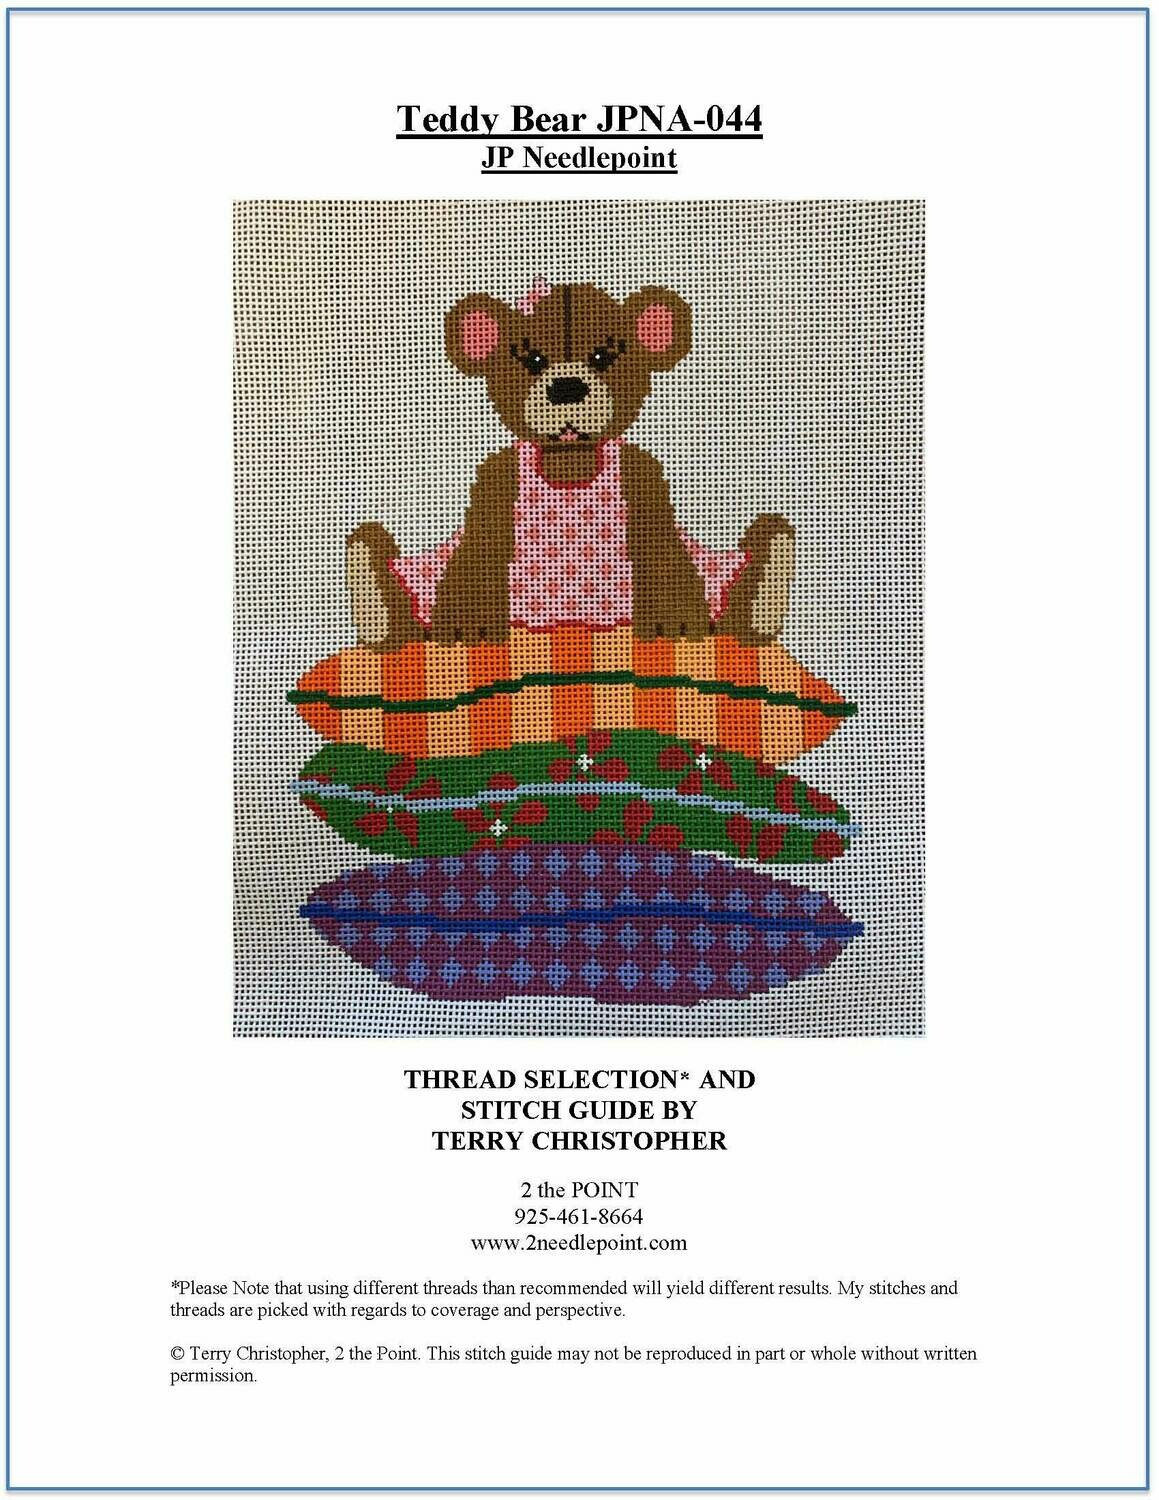 JP Needlepoint, Teddy Bear on Top of Pillows JPNA044